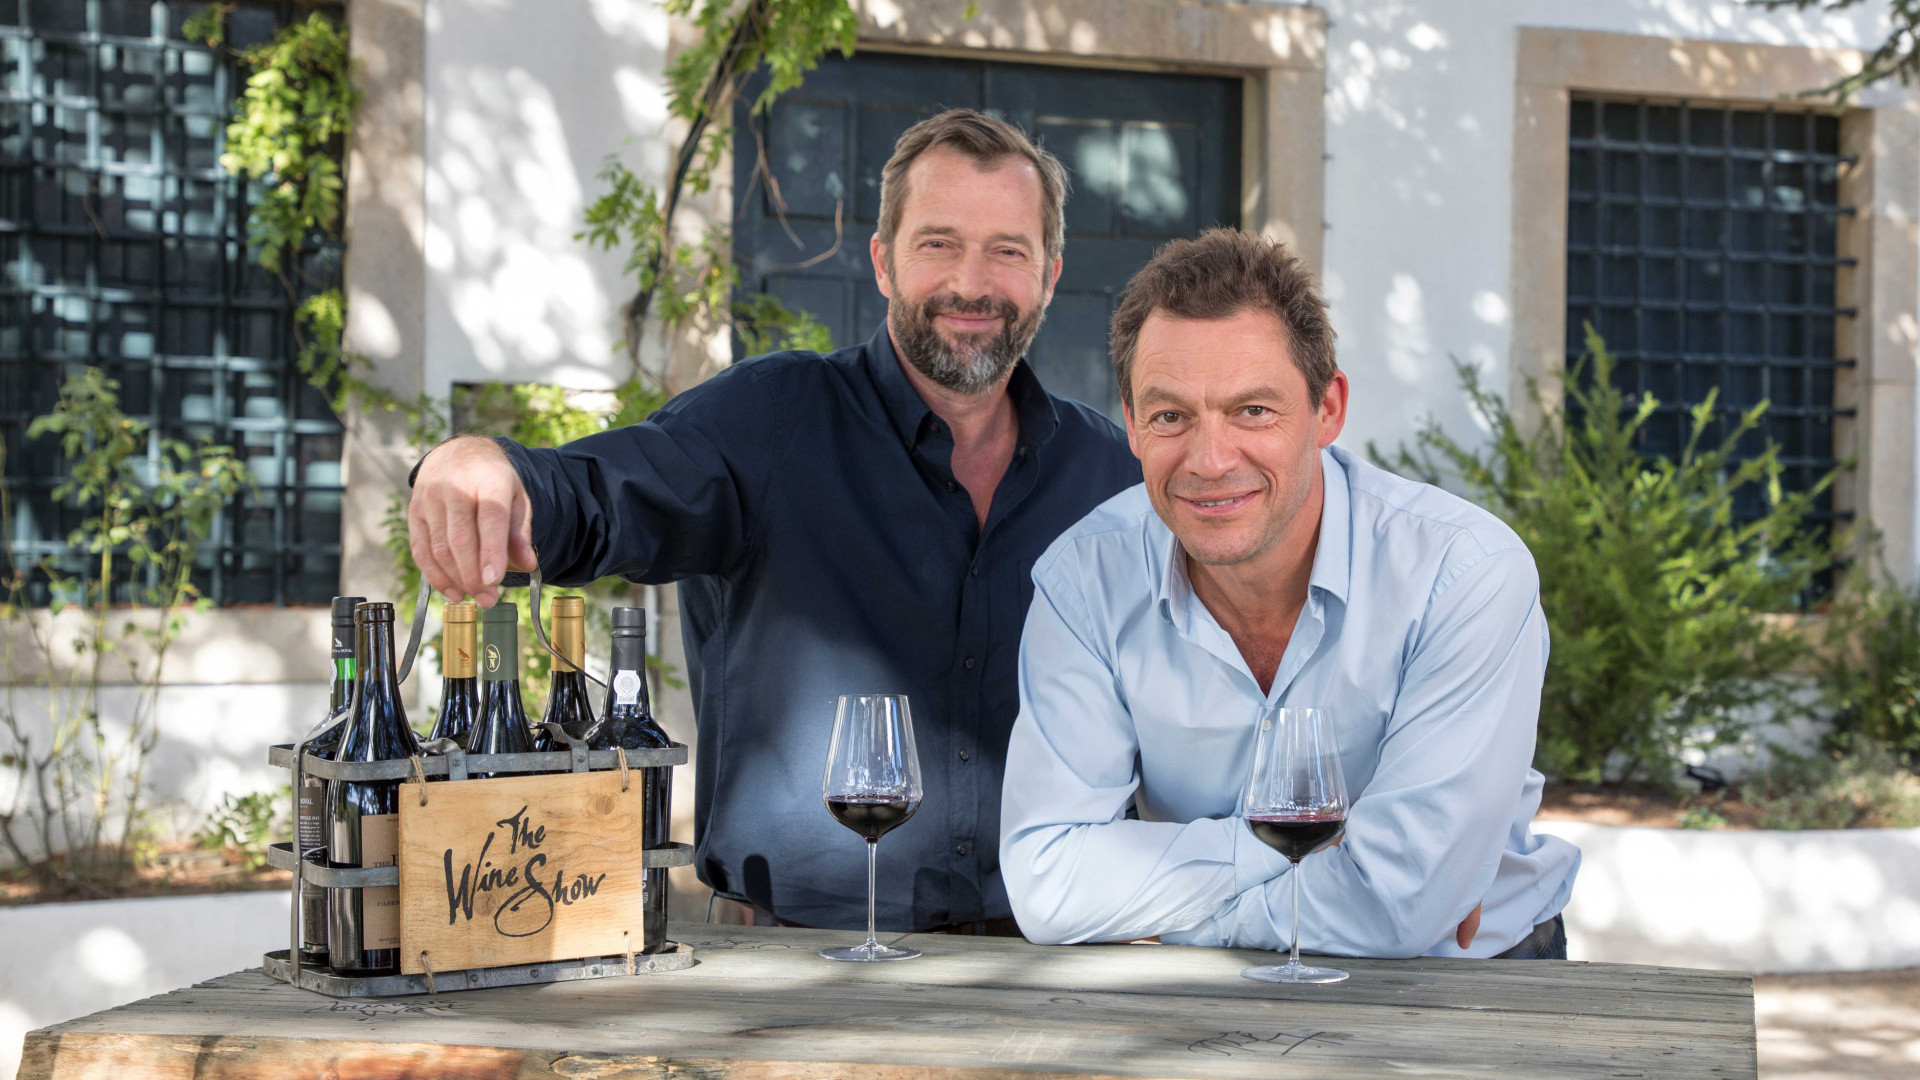 James Purefoy interview | The Wine Show